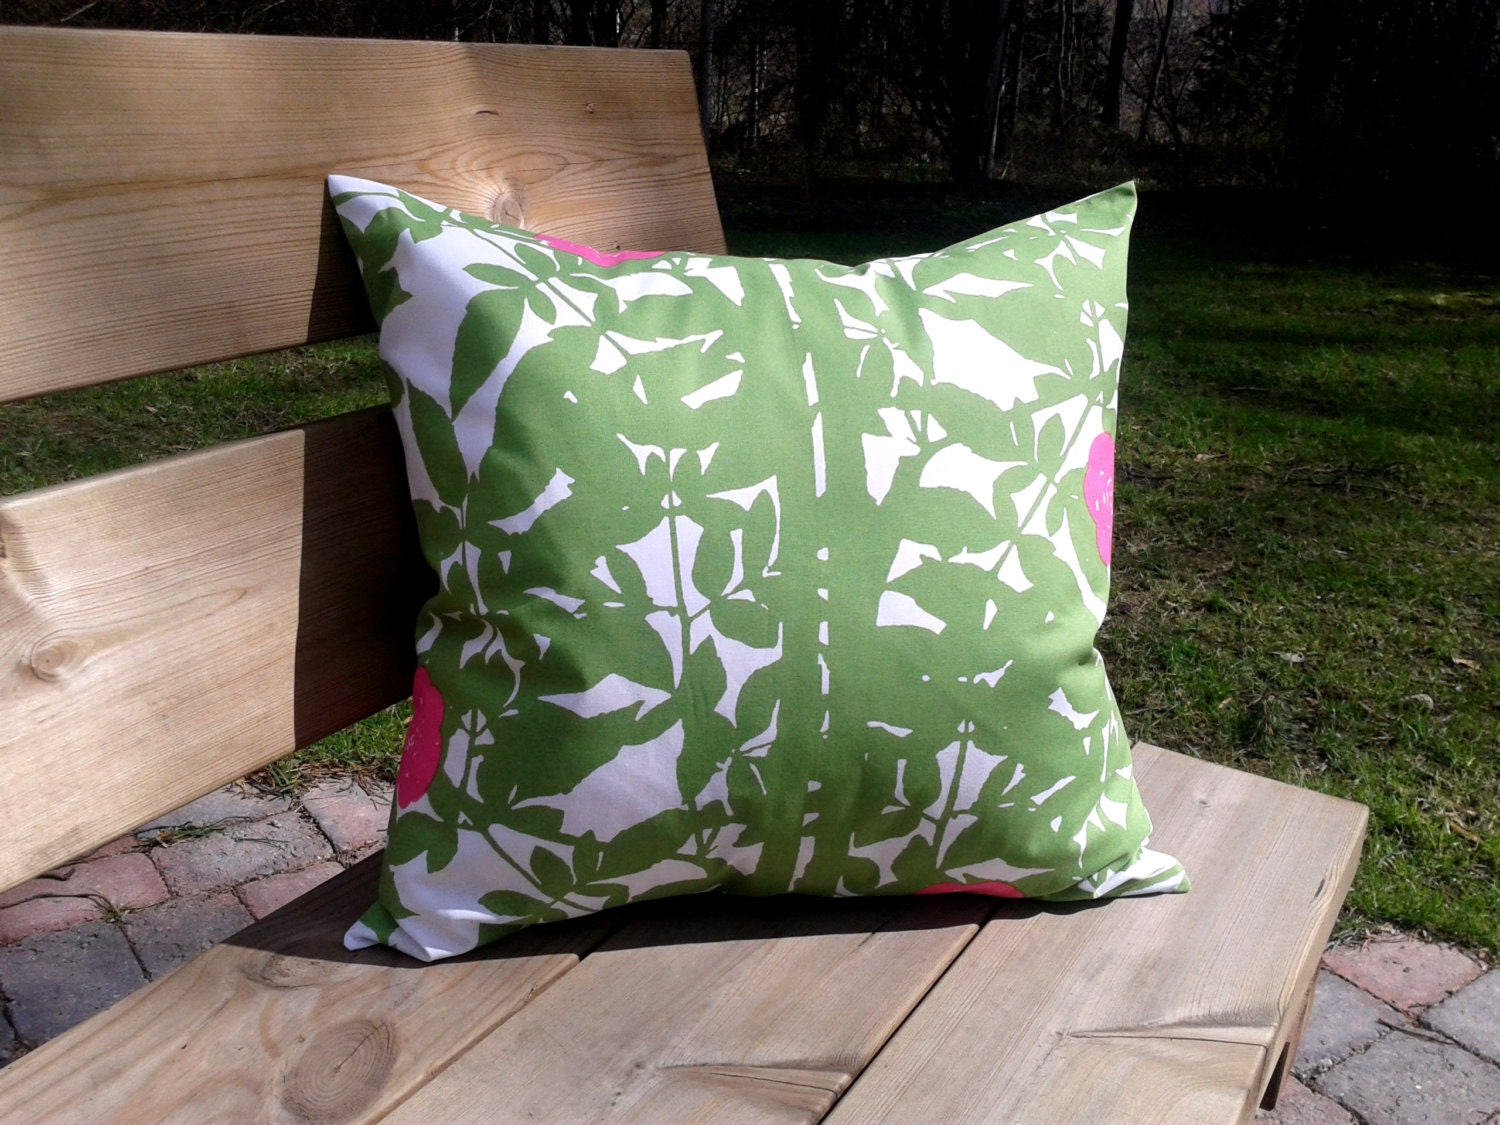 18 inch pillow cover from Marimekko fabric floral pillow case